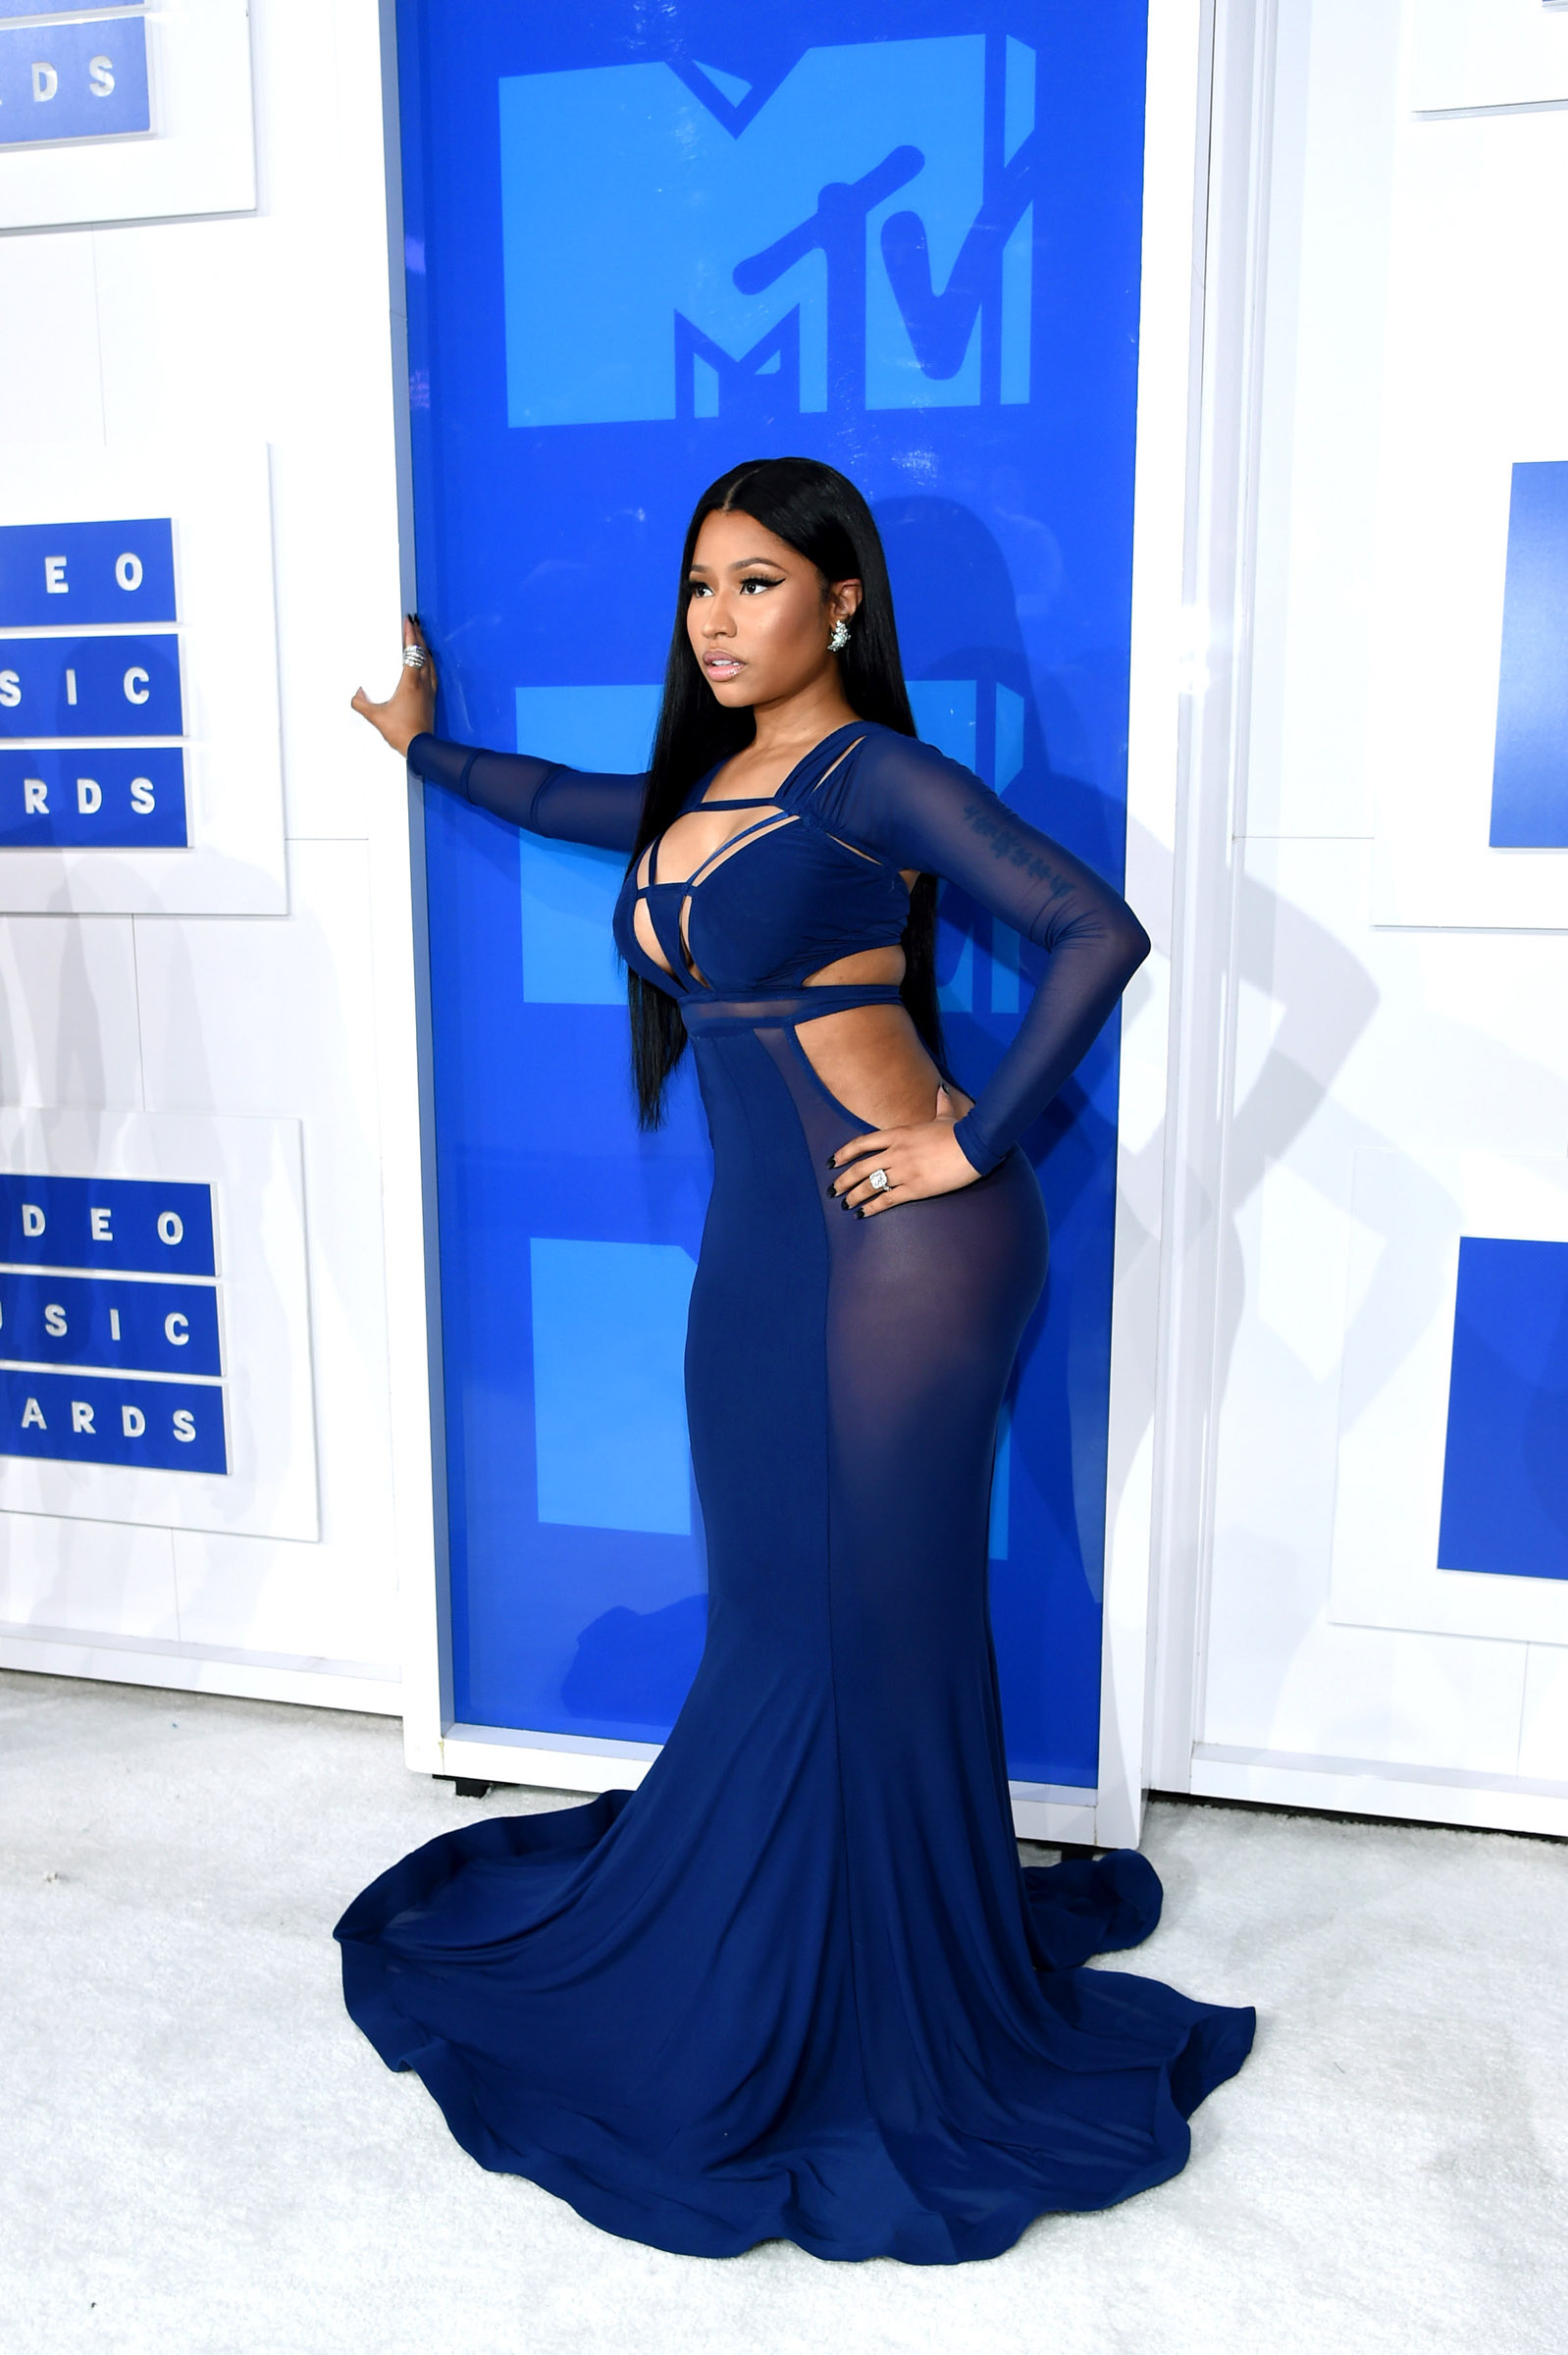 NEW YORK, NY - AUGUST 28:  Nicki Minaj attends the 2016 MTV Video Music Awards on August 28, 2016 in New York City.  (Photo by Larry Busacca/Getty Images for MTV)